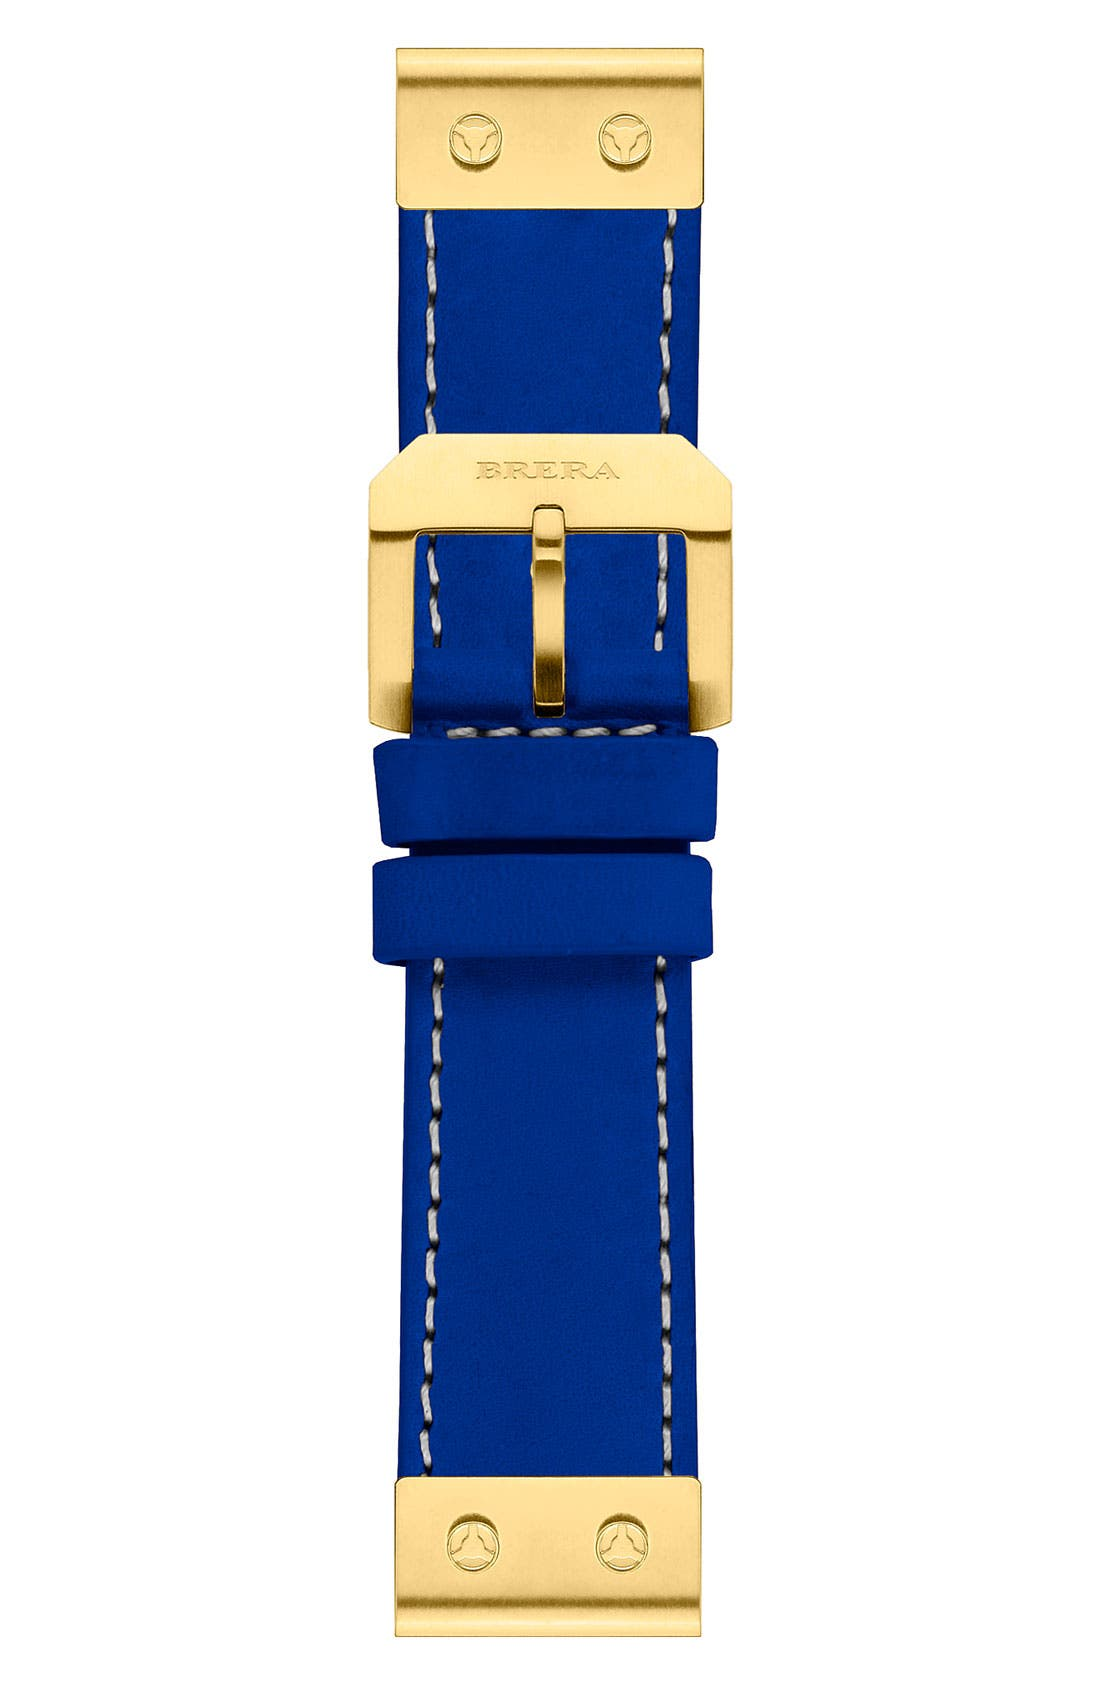 Alternate Image 1 Selected - Brera 22mm Calfskin Leather Watch Strap